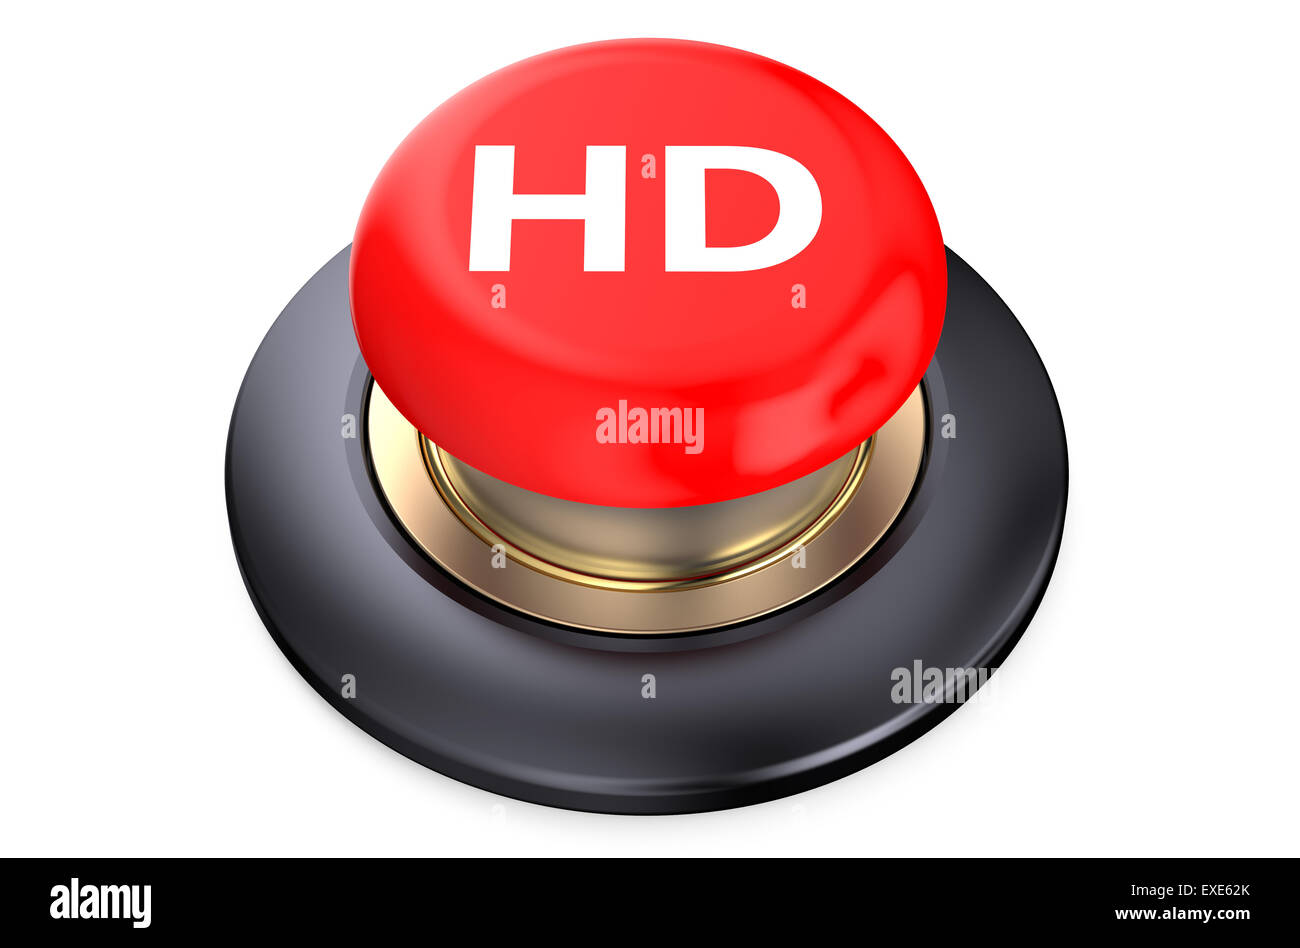 'HD' red pushbutton isolated on white background - Stock Image